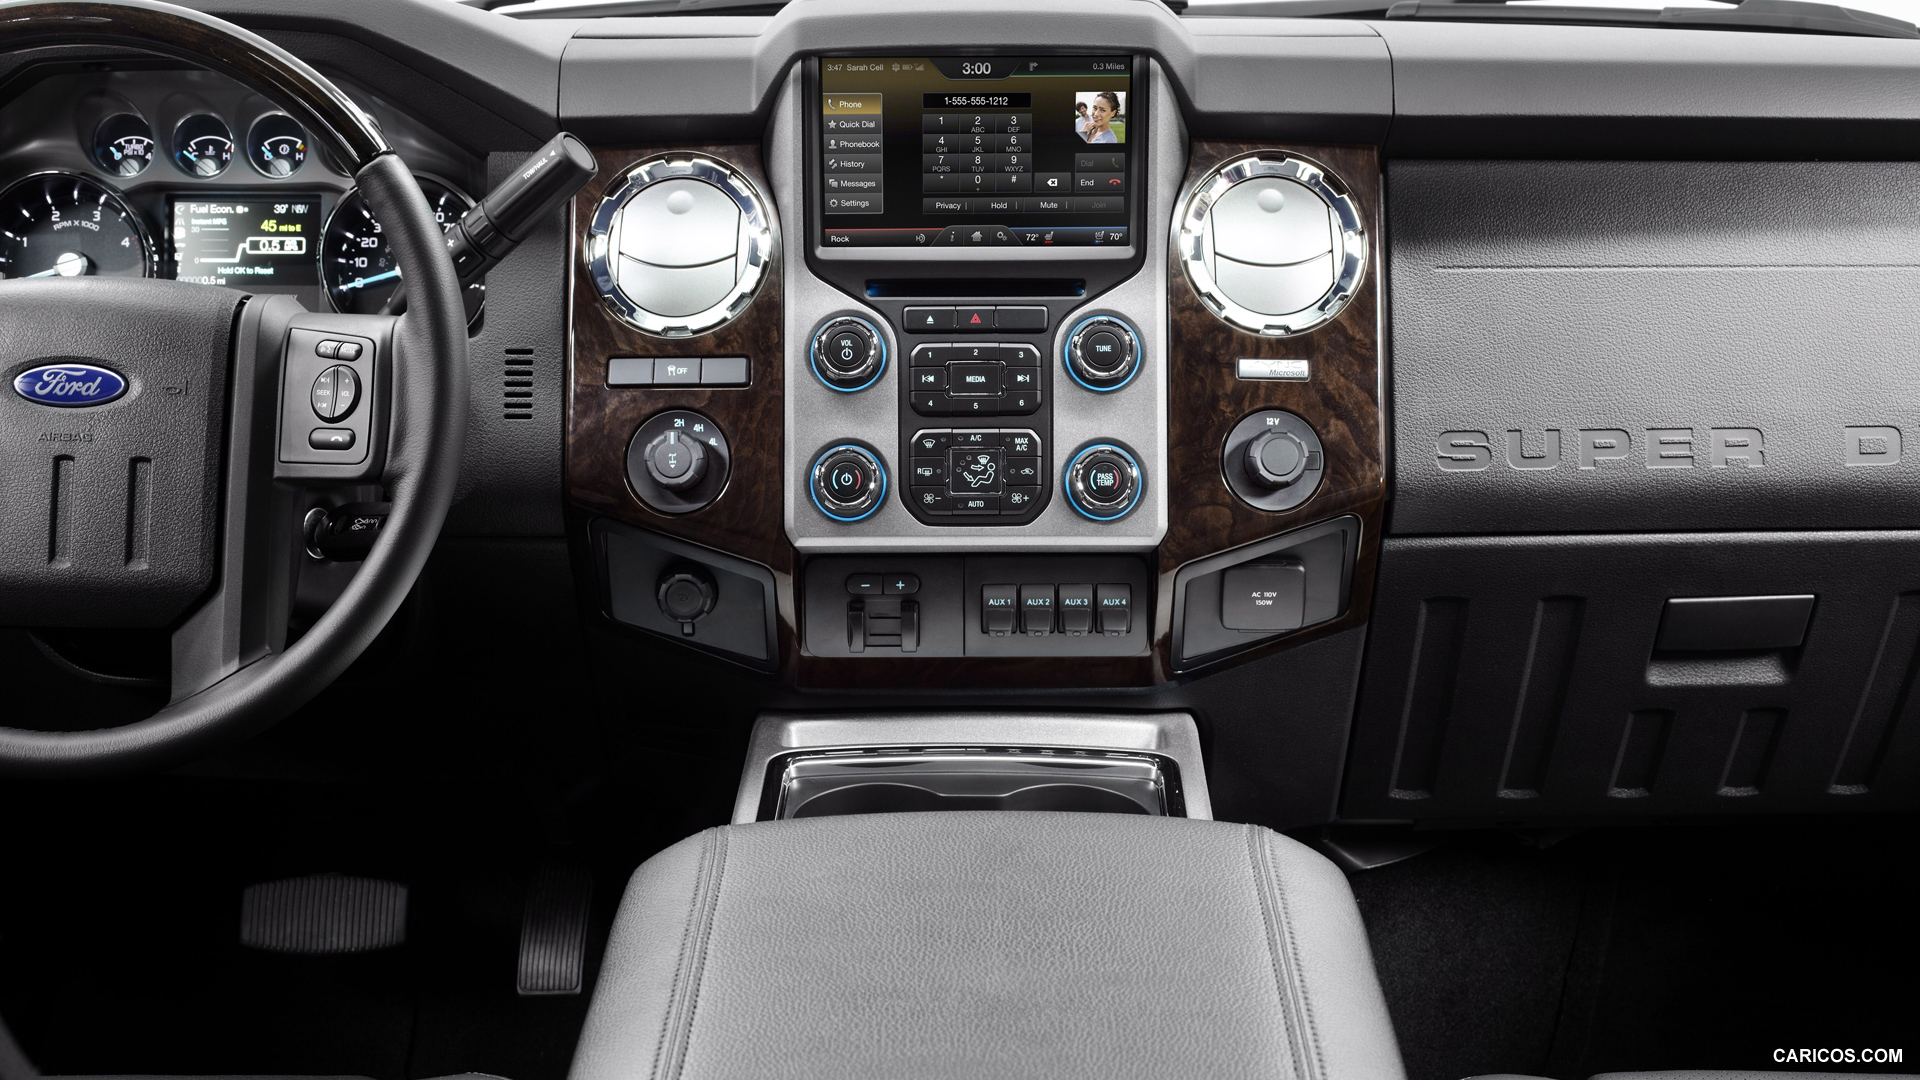 Ford Super Duty Platinum photos - PhotoGallery with 39 pics| CarsBase.com